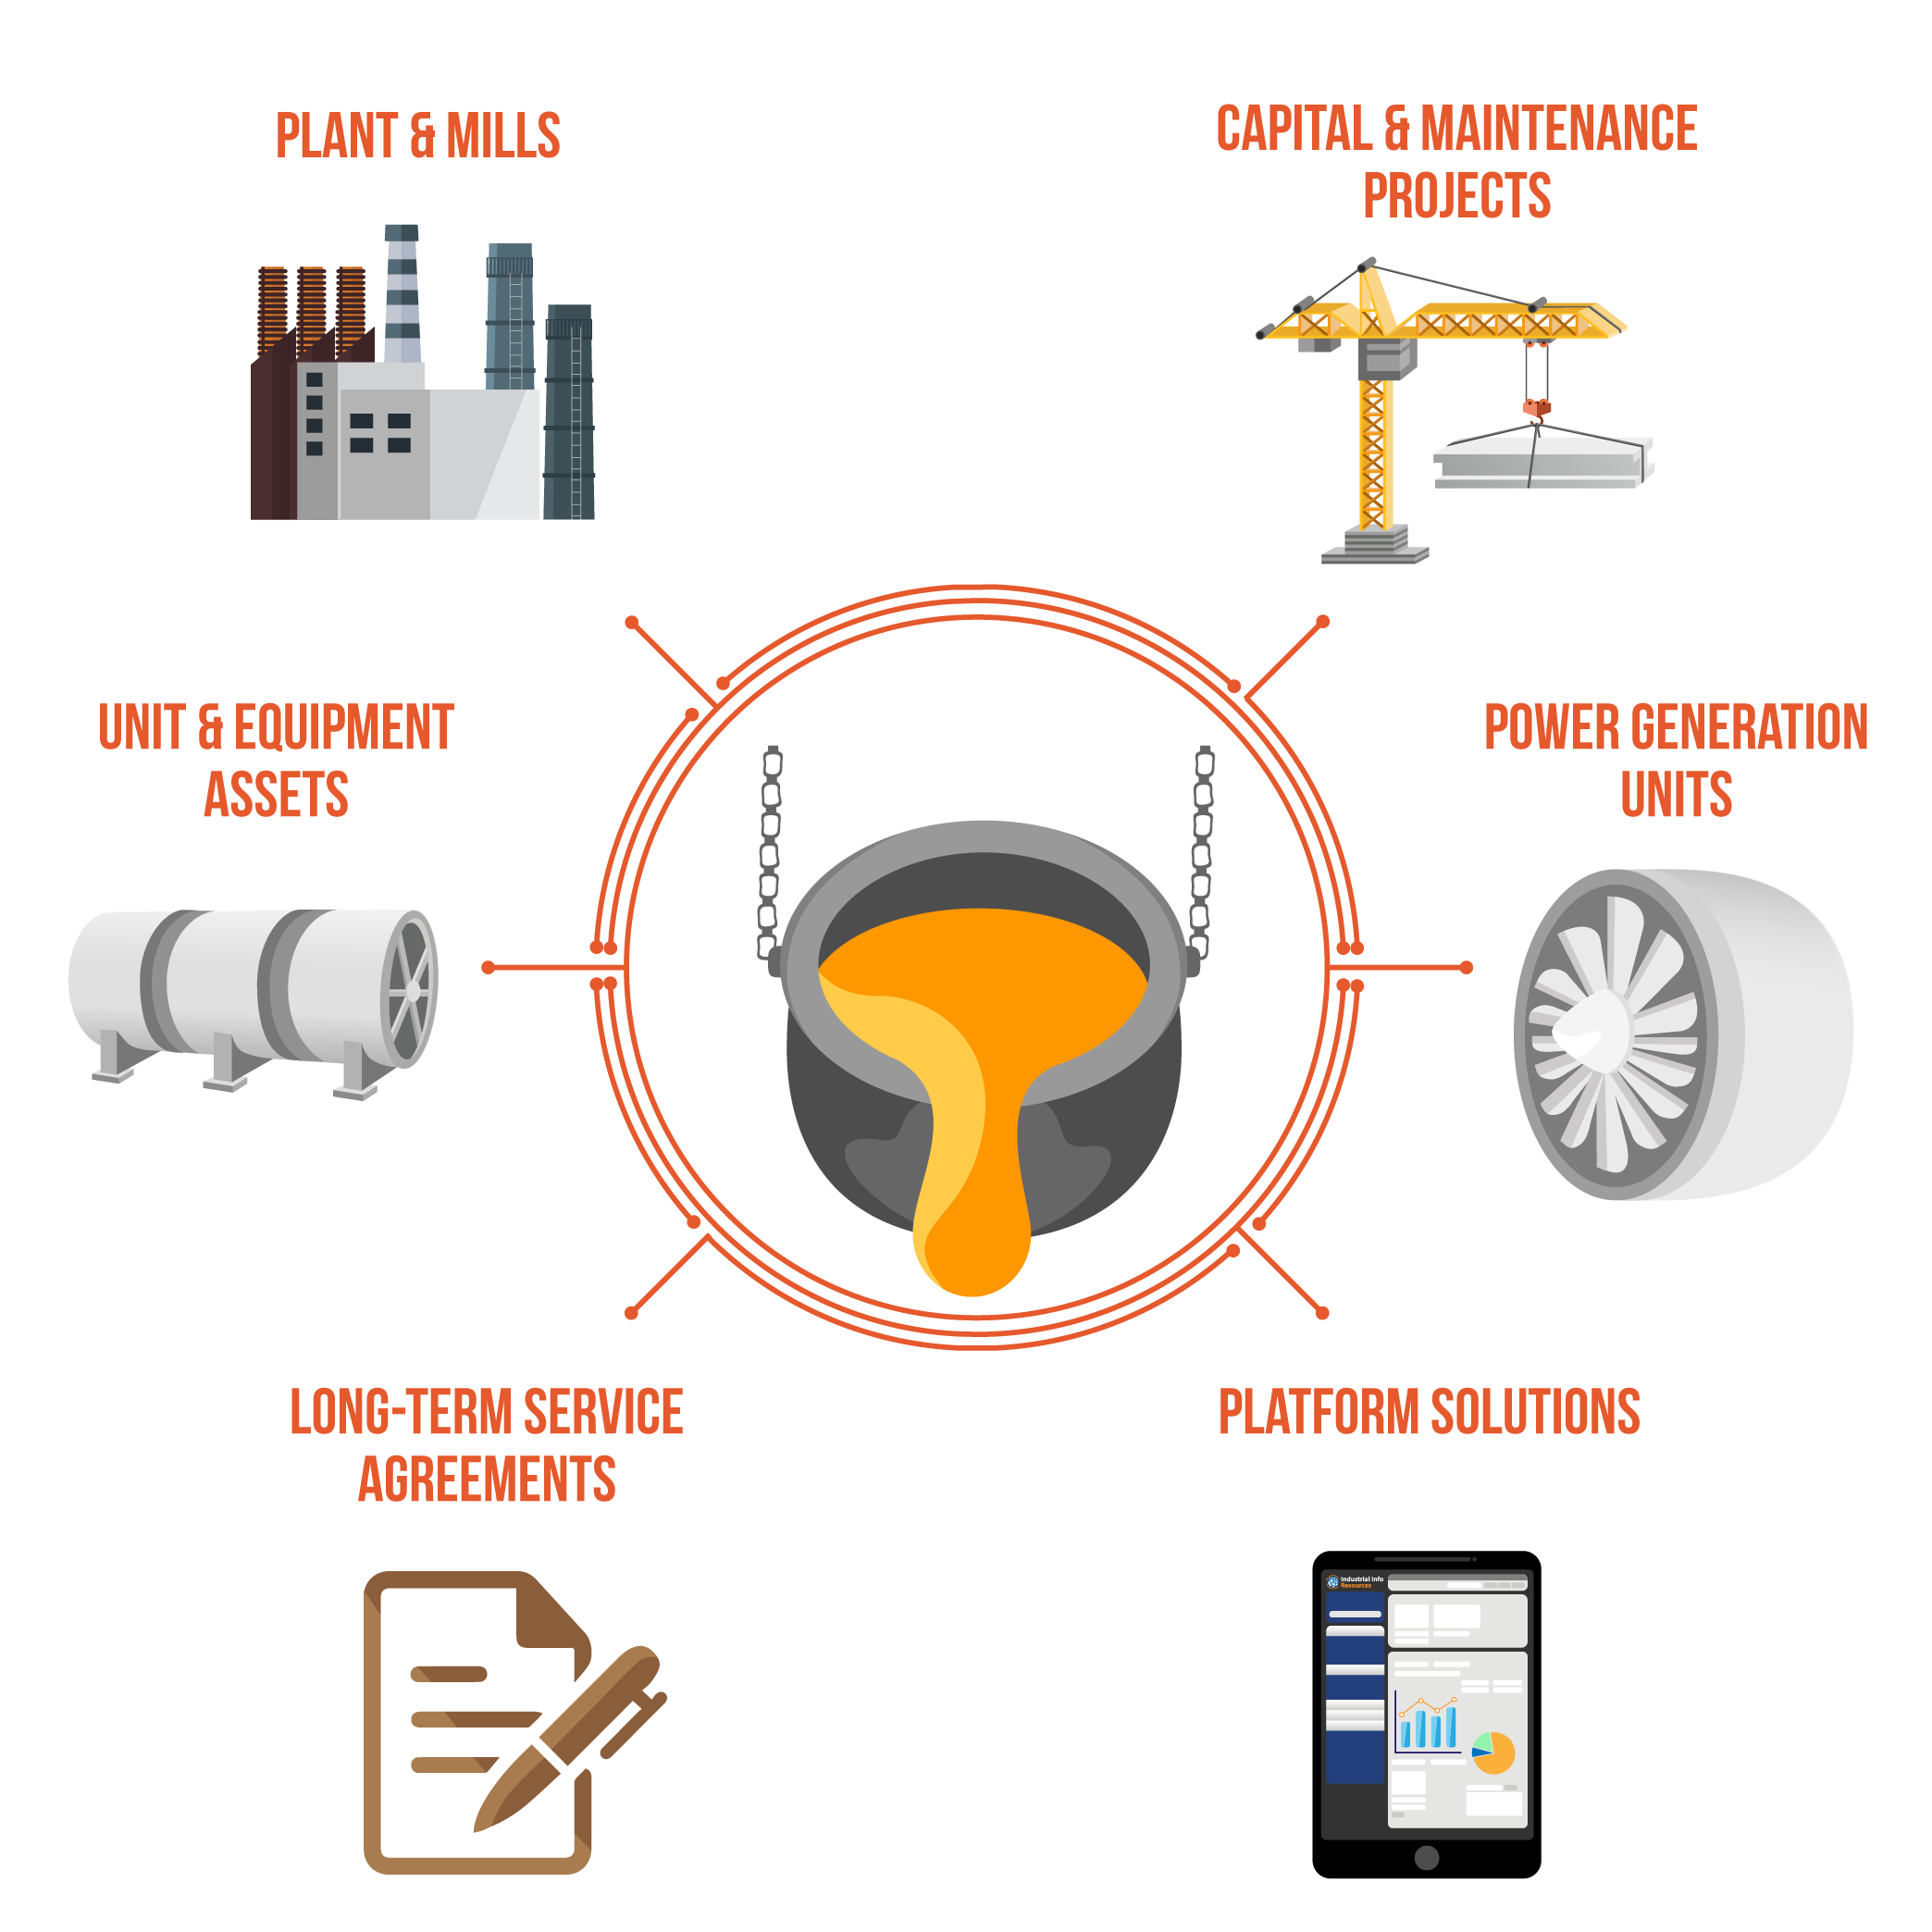 Steel industries clipart catalogue clip art free stock Metals and Minerals - Mines and Mills Projects, Plants and ... clip art free stock